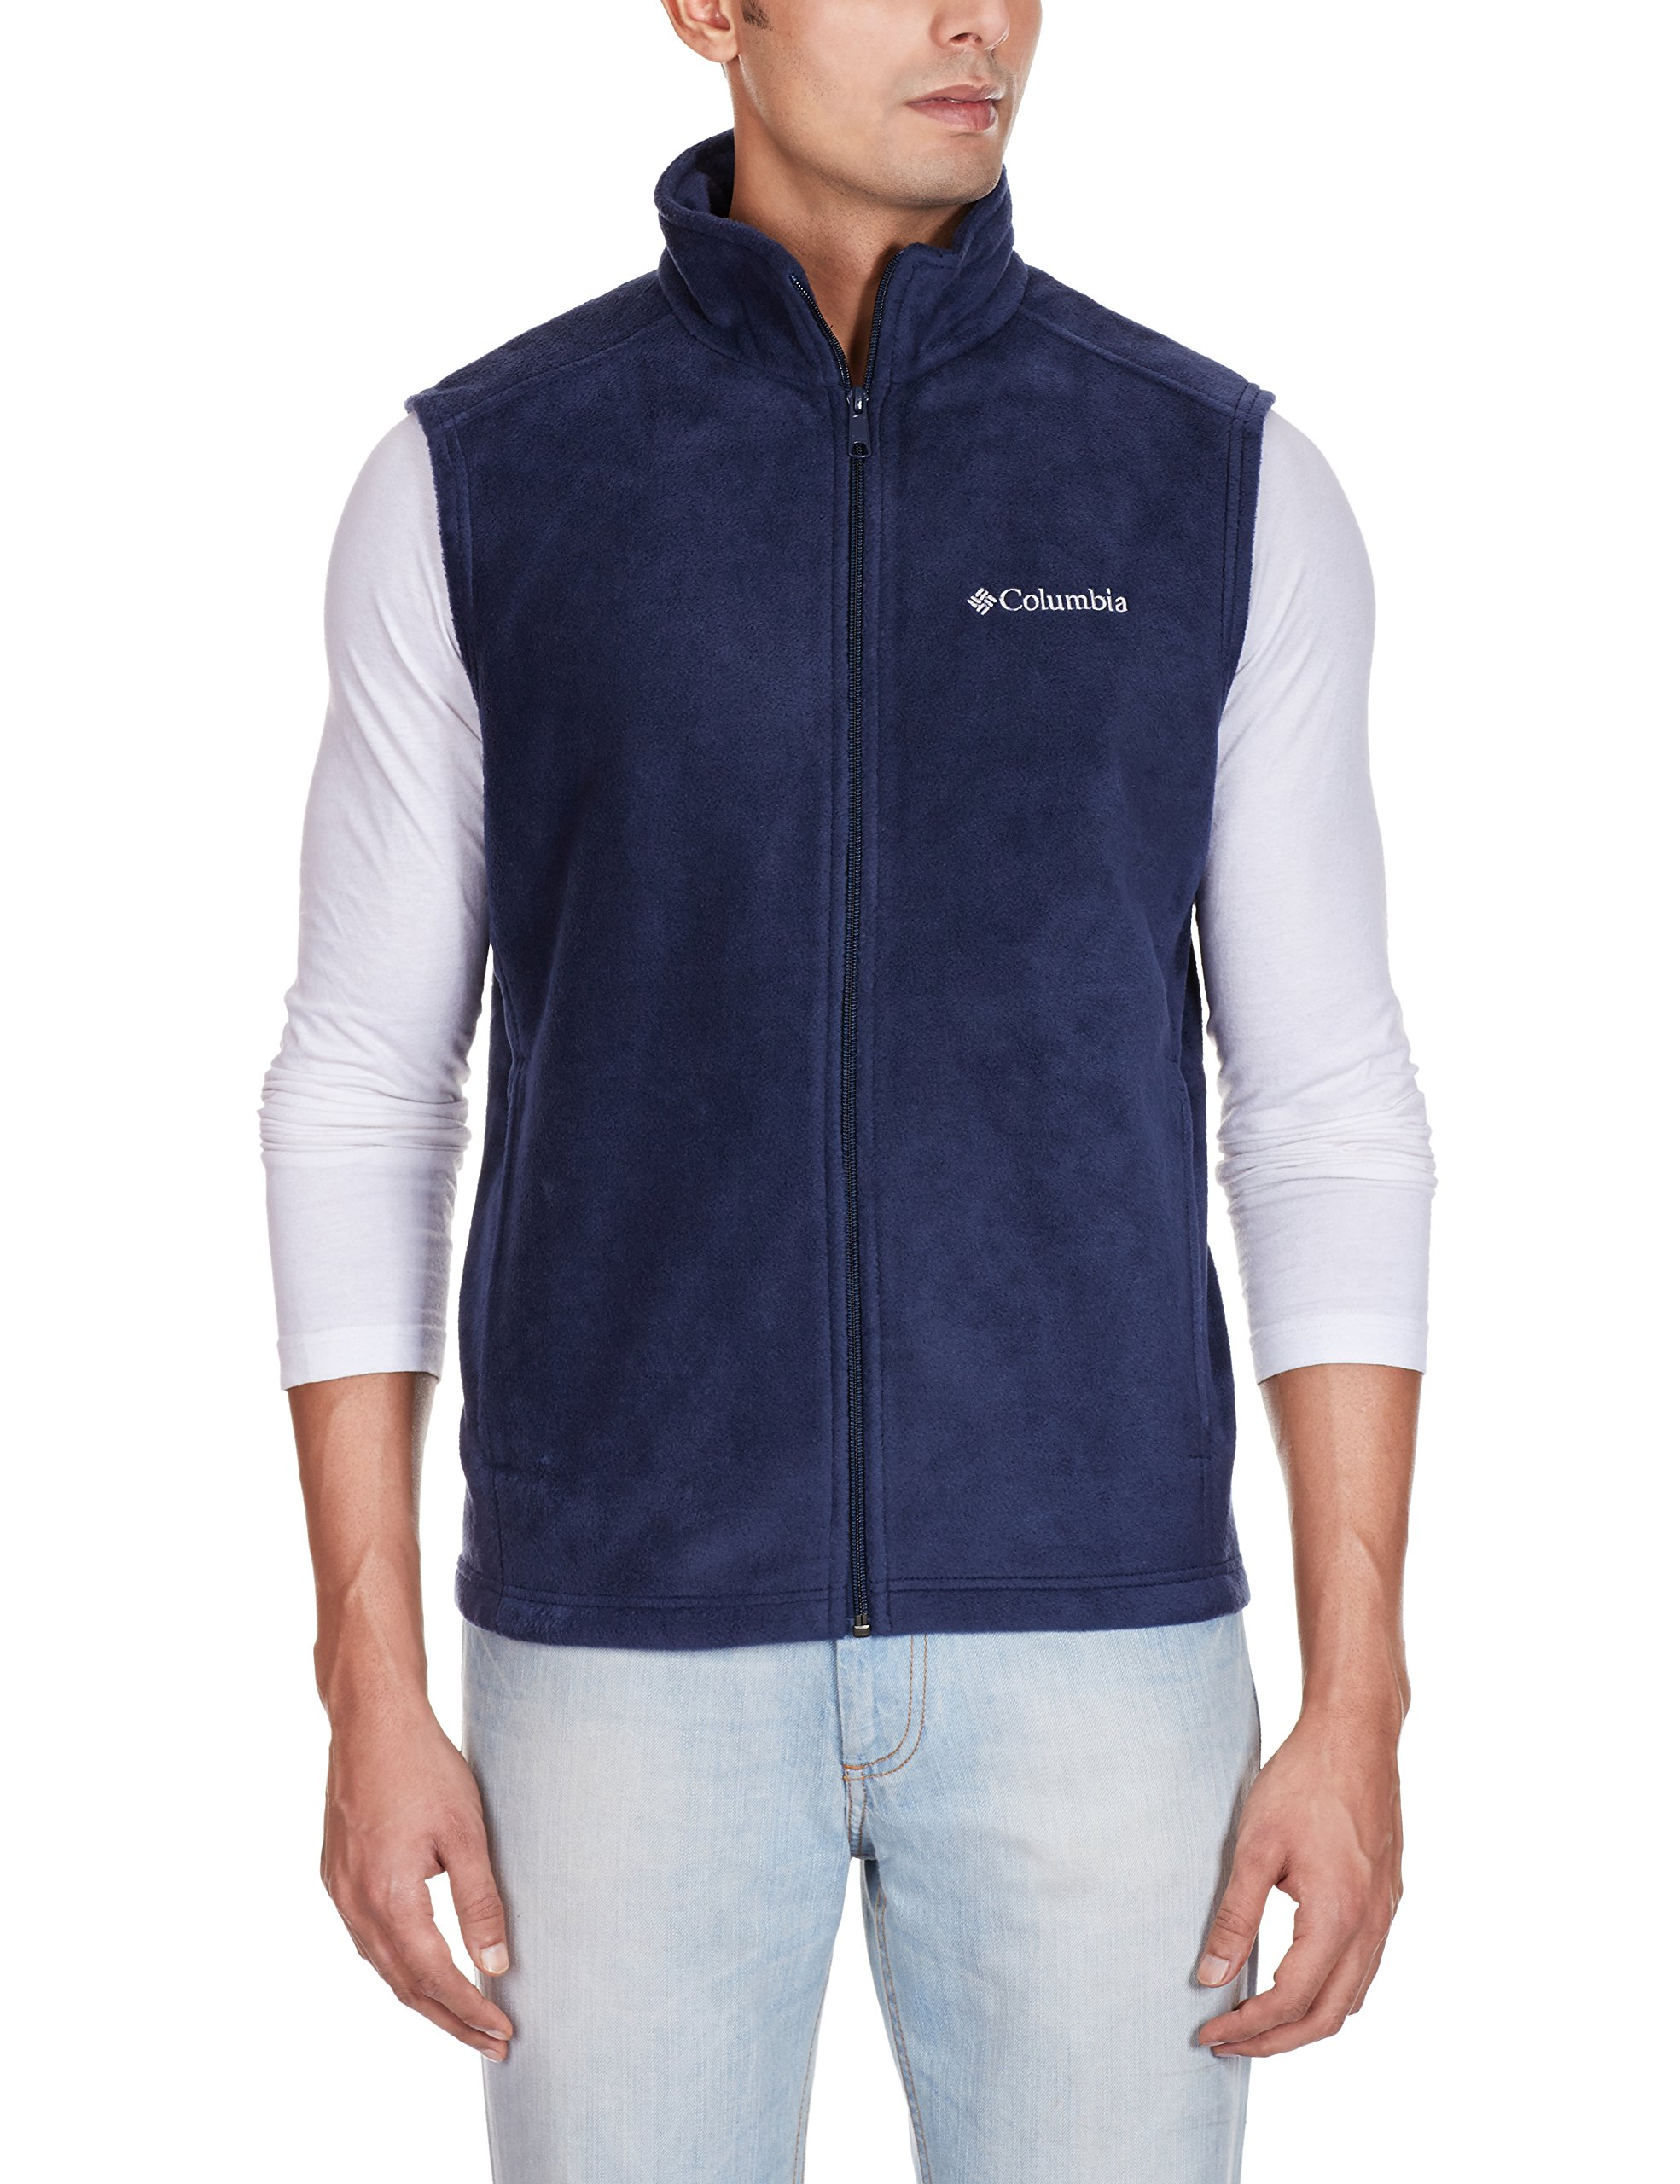 Columbia Men's Cathedral Peak II Fleece Vest, Collegiate Navy, Large